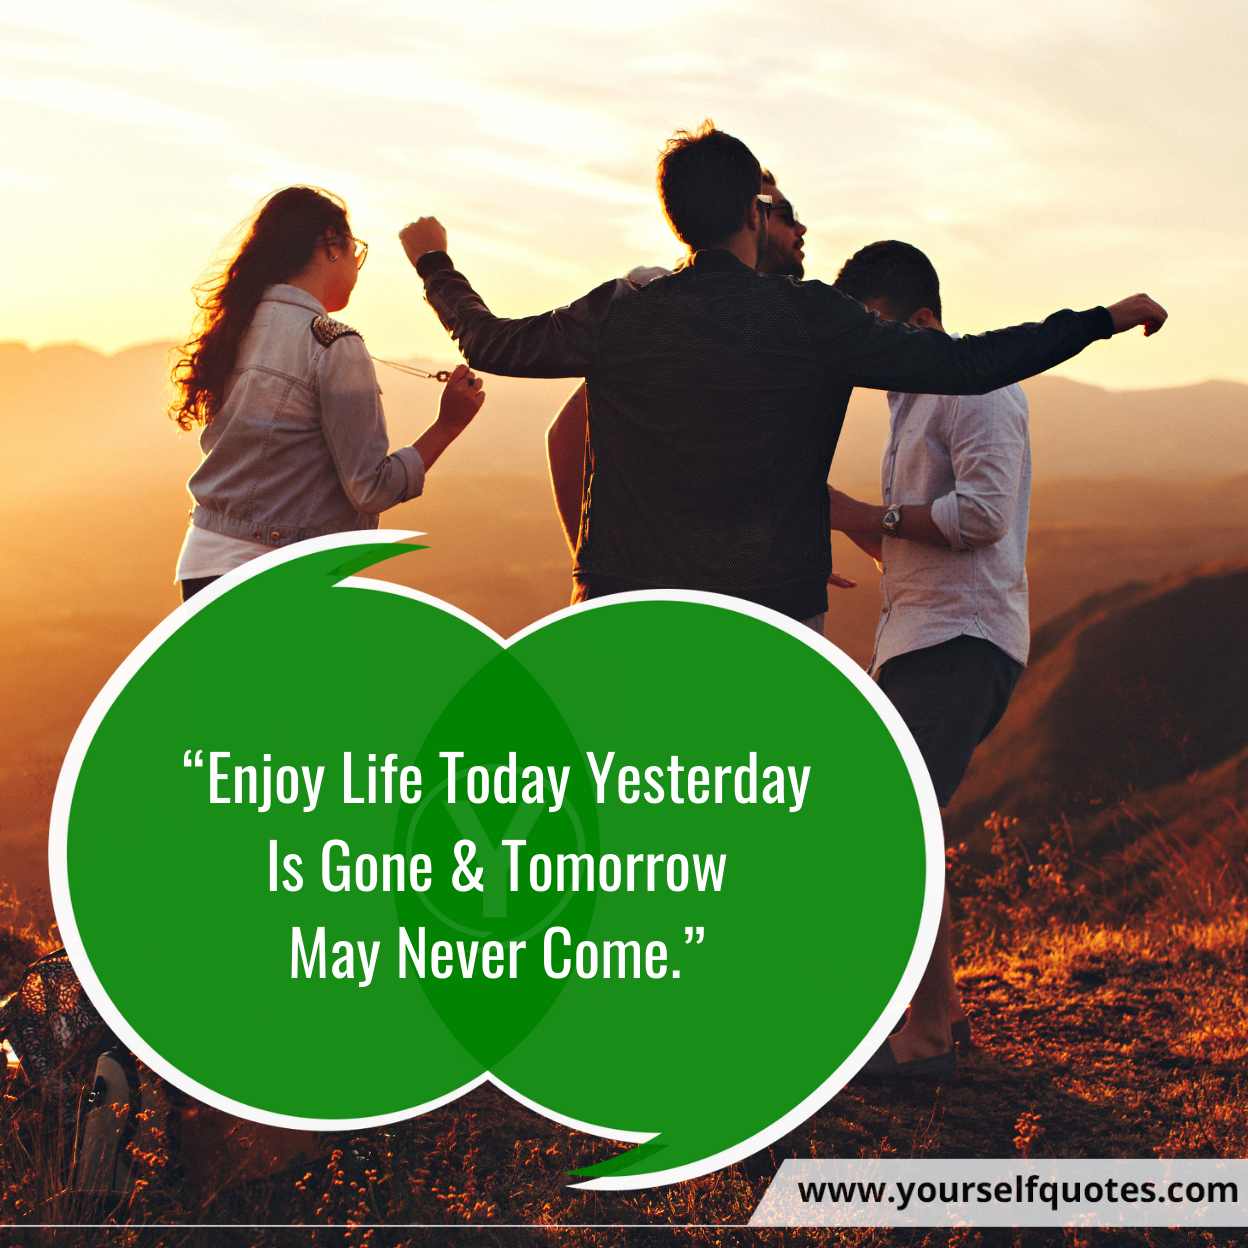 enjoy life quotes images.png